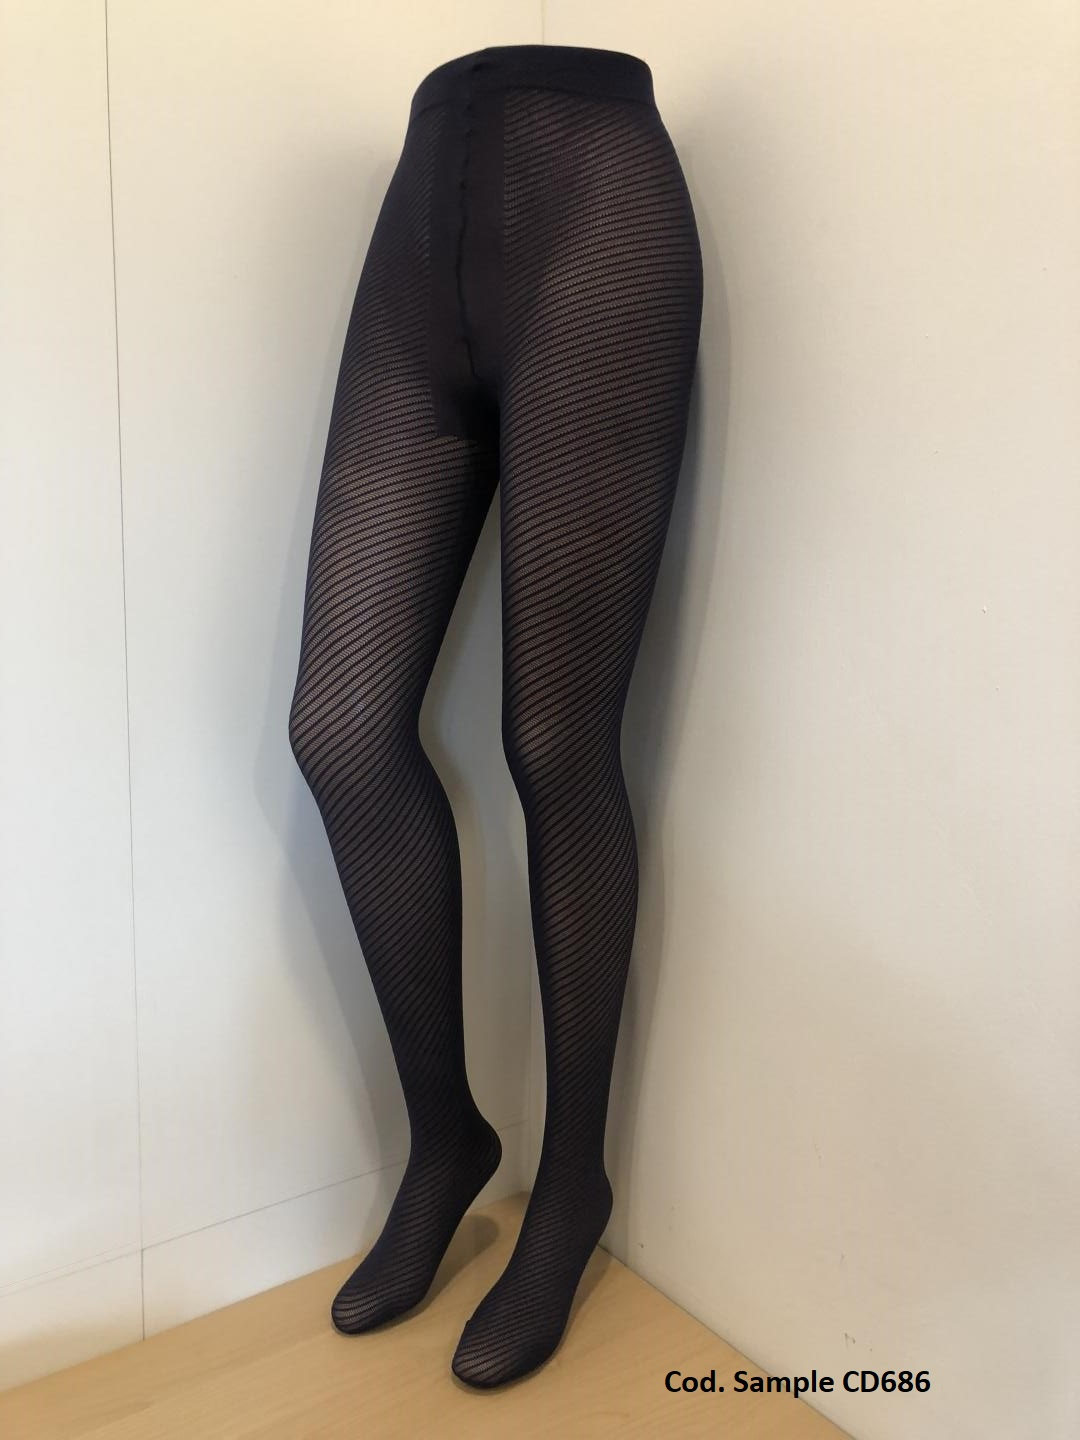 New Pantyhose with Diagonal Pattern!